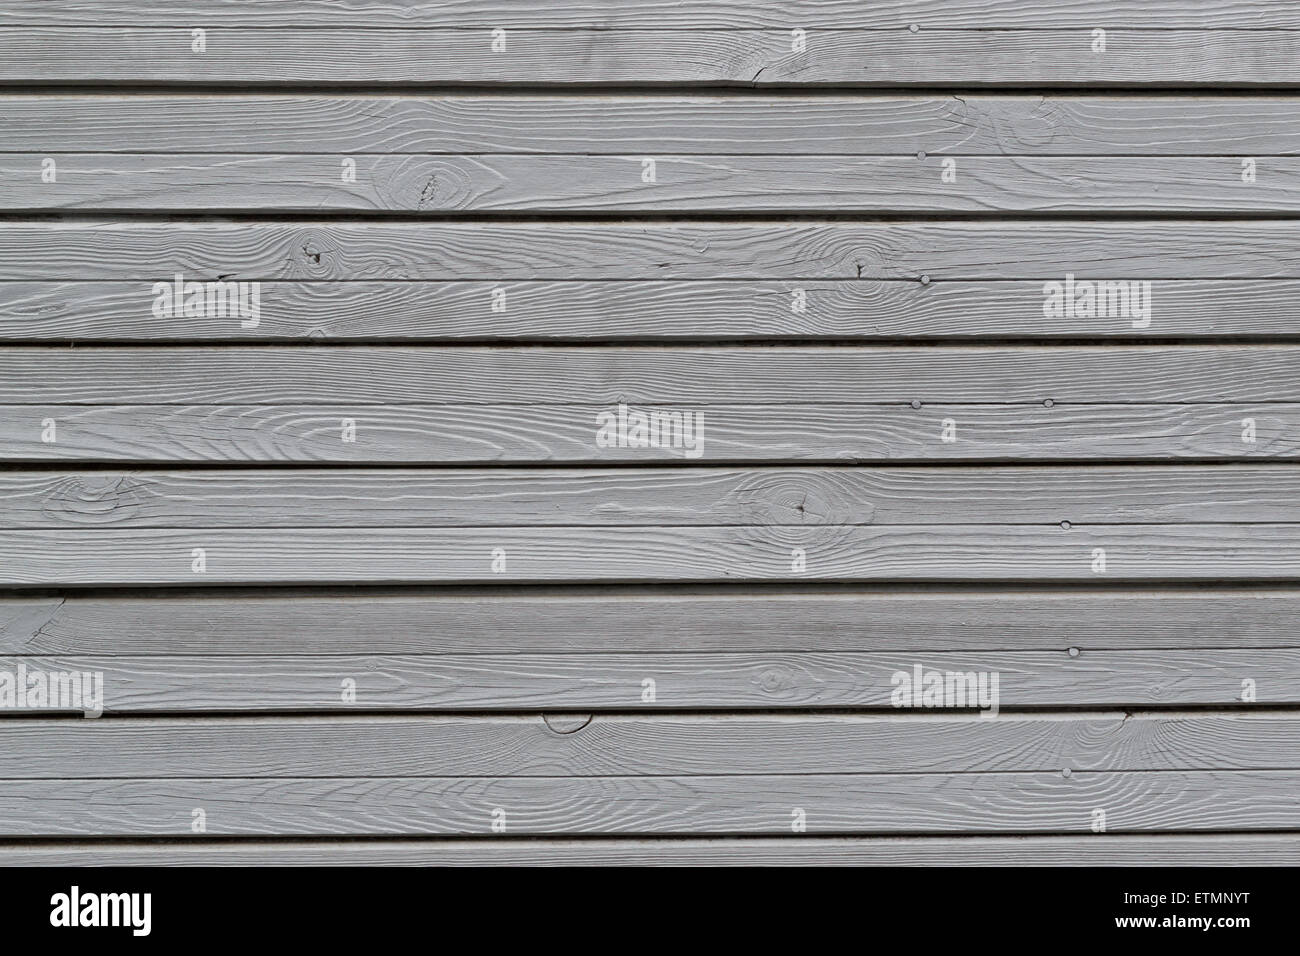 Grey painted wooden wall texture with knots and nail heads - Stock Image